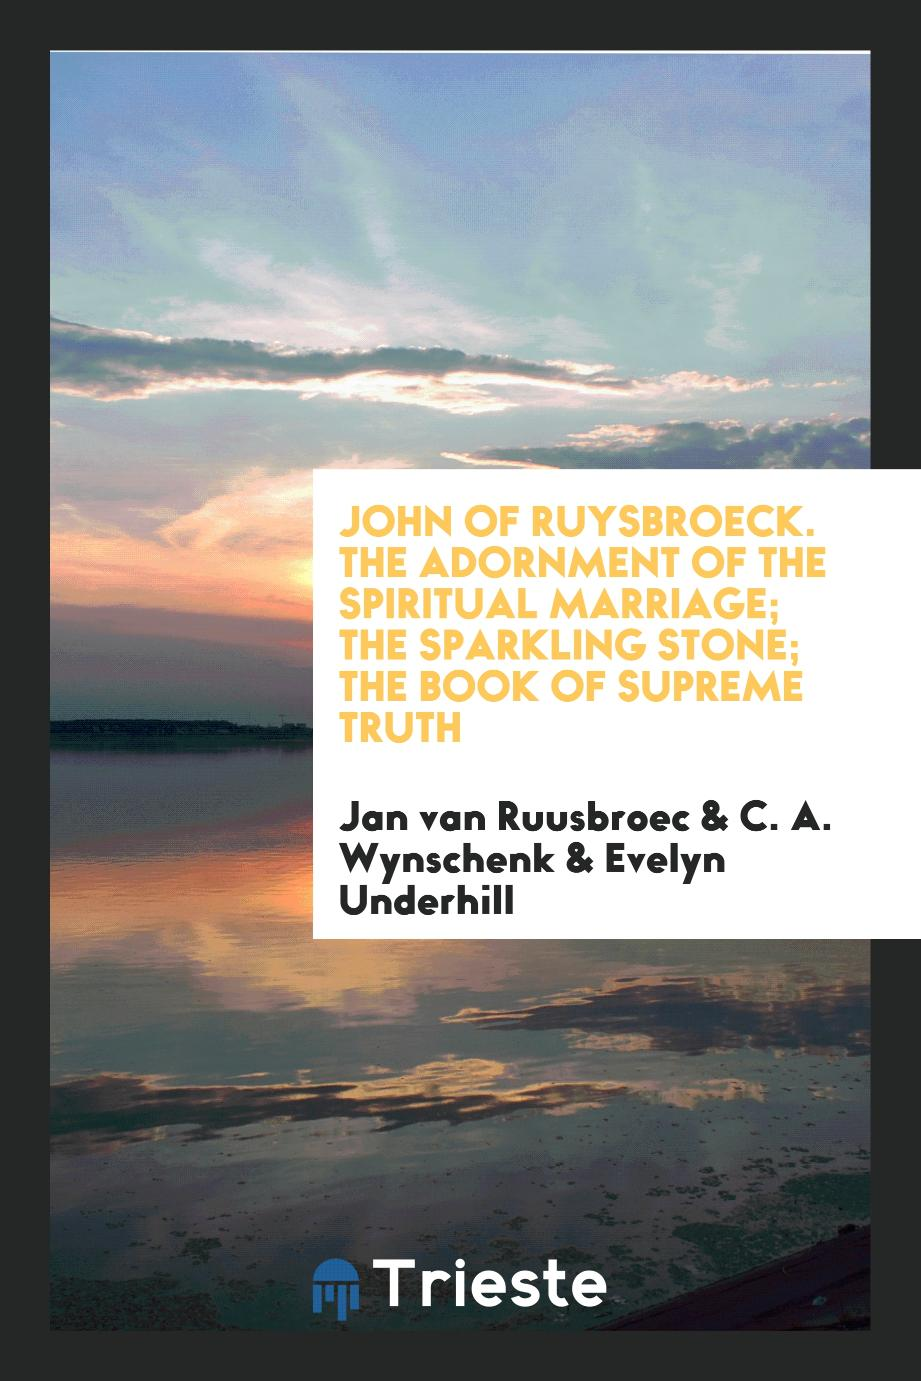 John of Ruysbroeck. The Adornment of the Spiritual Marriage; The Sparkling Stone; The Book of Supreme Truth